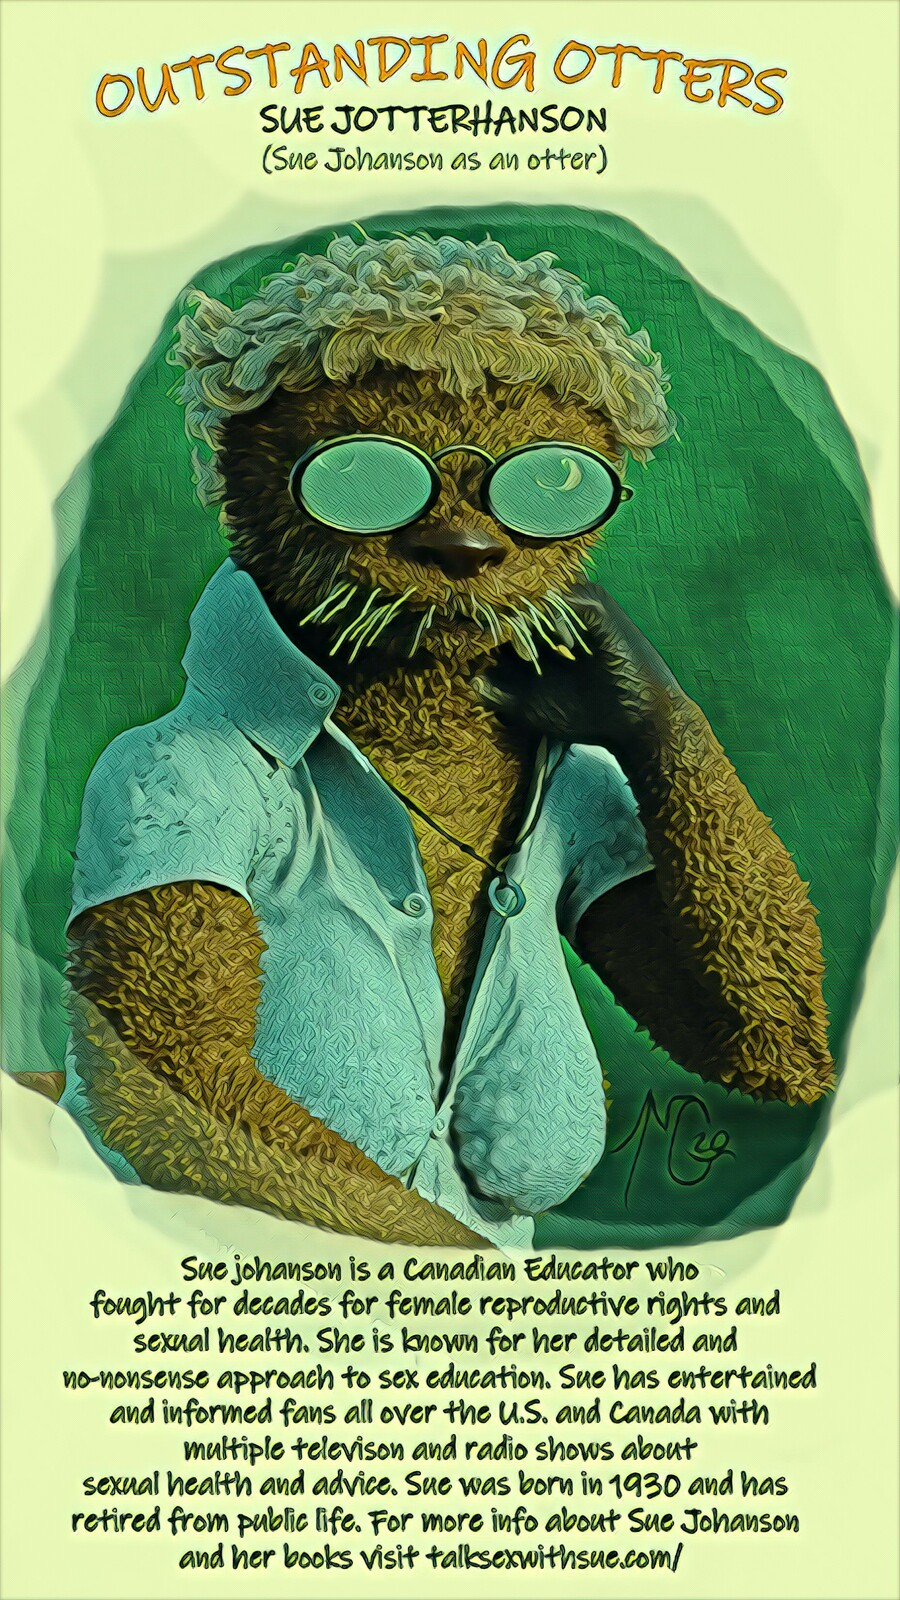 Outstanding Otters: Sue Jotterhanson - Mike Gagnon, 2020, Digital Mixed Media